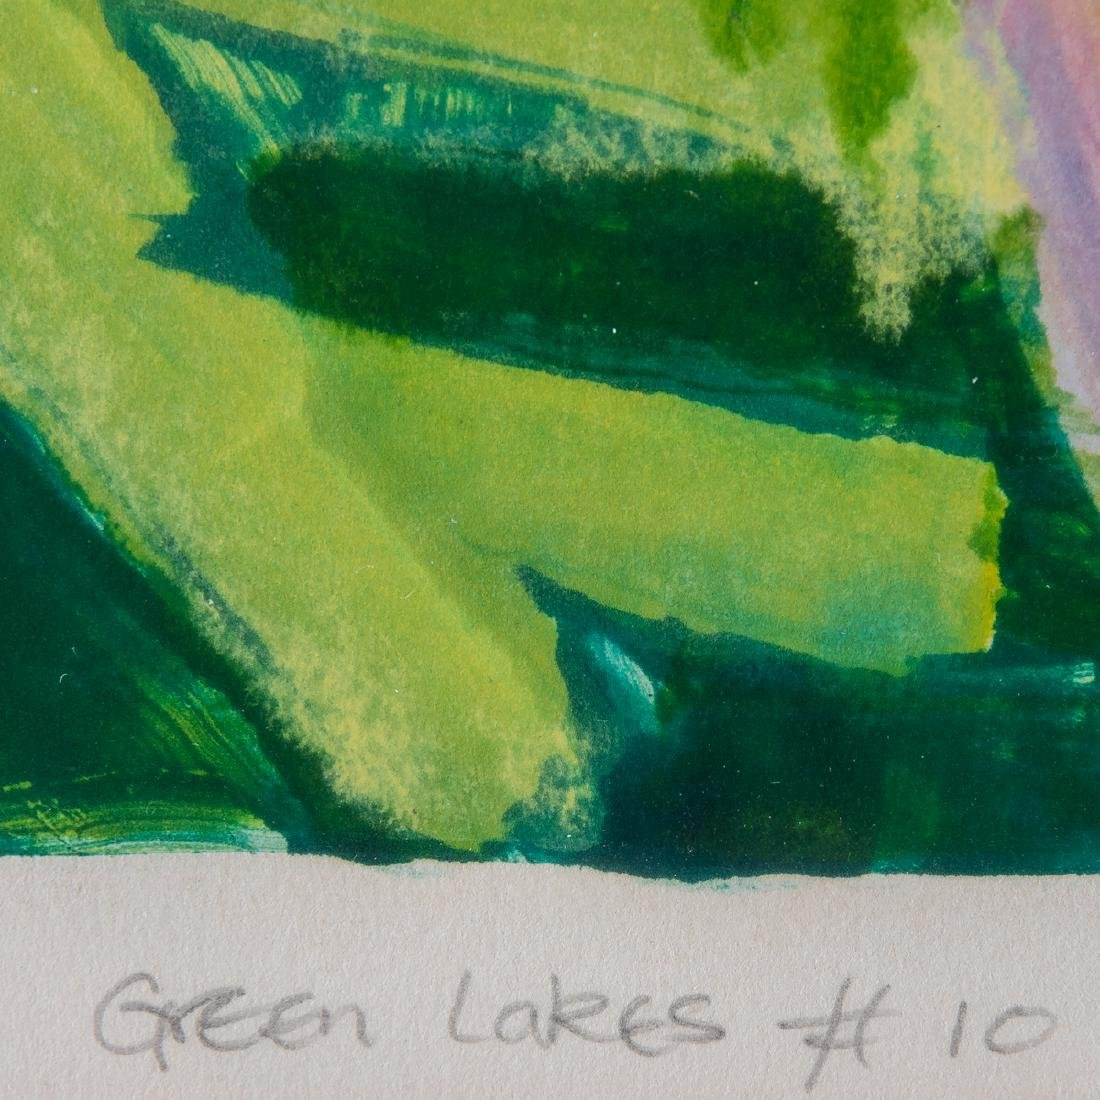 Liz Pannett (b. 1947) 'Green Lakes #1' and 'Green Lakes - 9